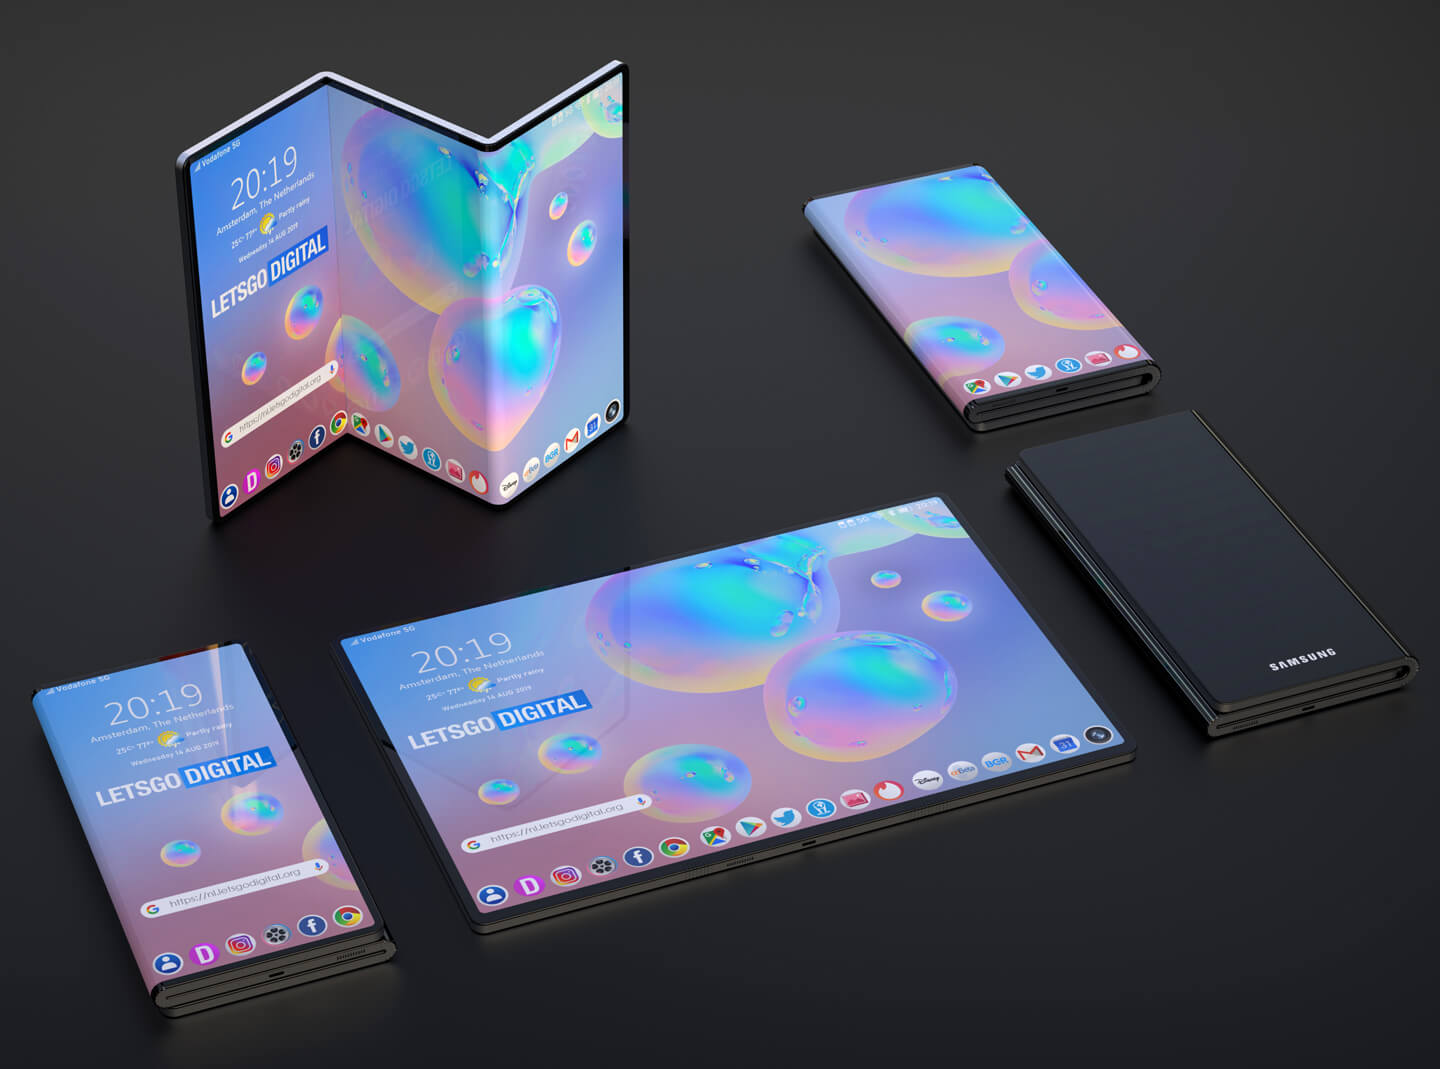 Galaxy Fold coming soon | Tic Tech Toe — Samsung